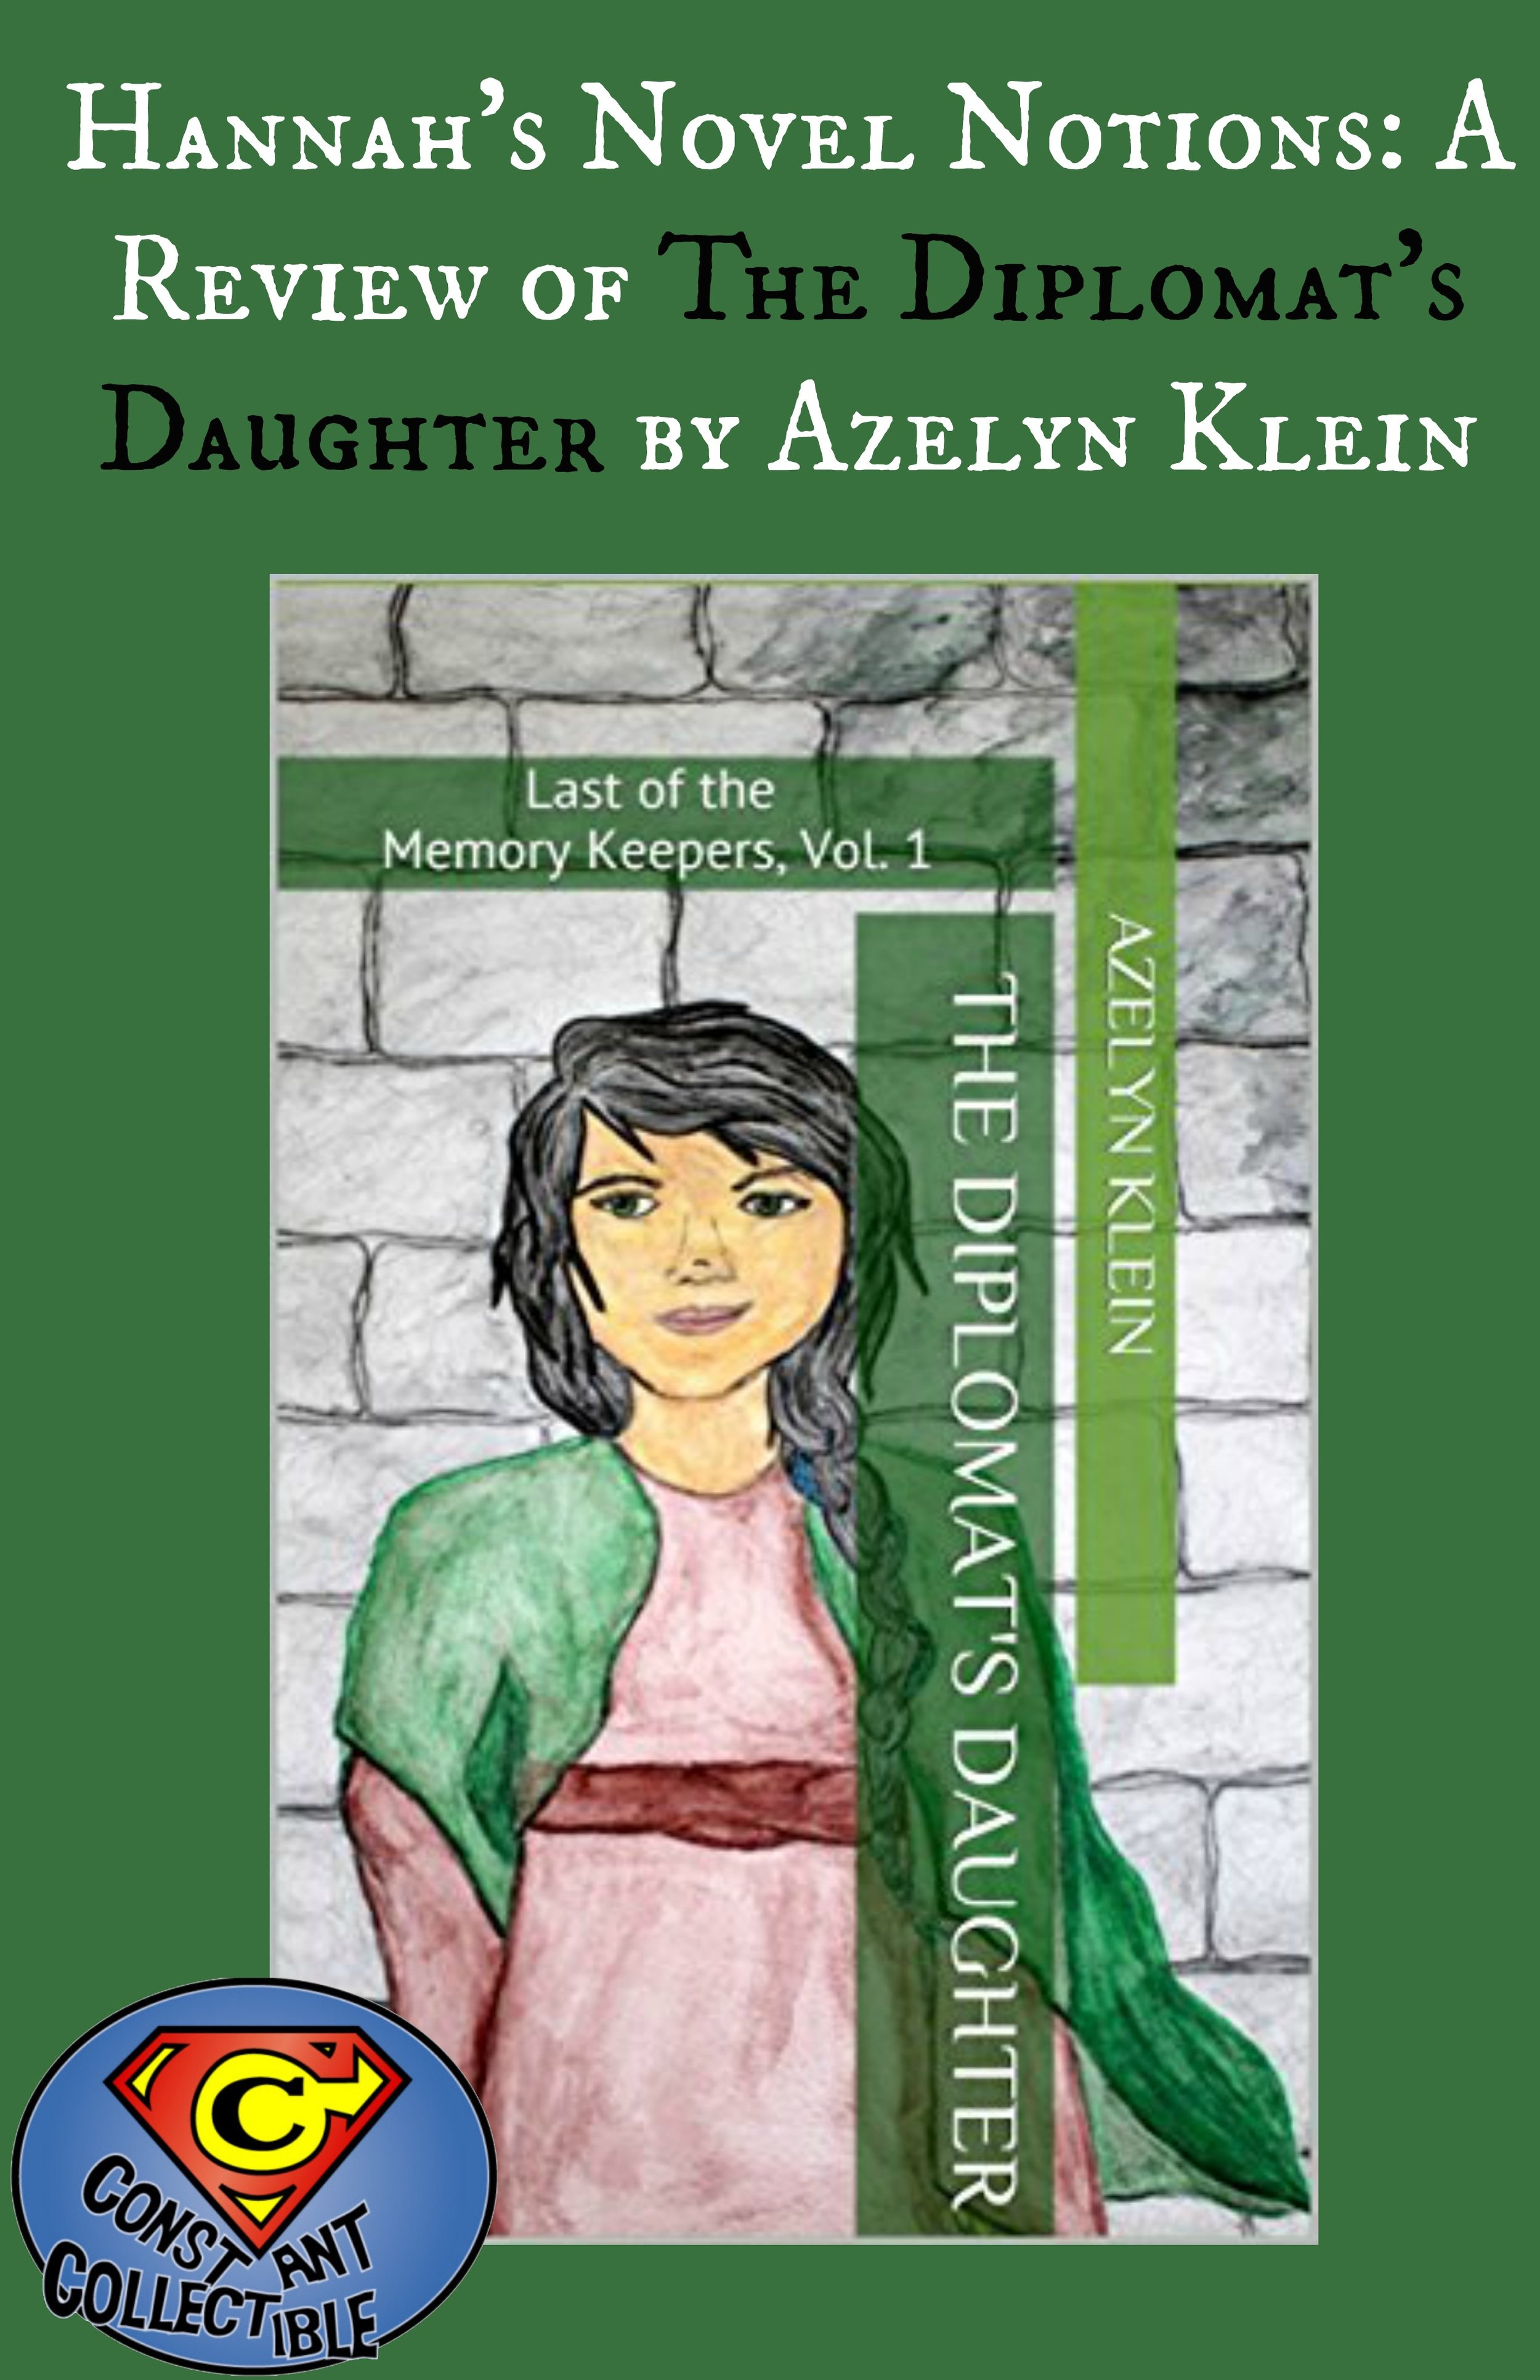 Hannah's Novel Notions: A Review of The Diplomat's Daughter by Azelyn Klein